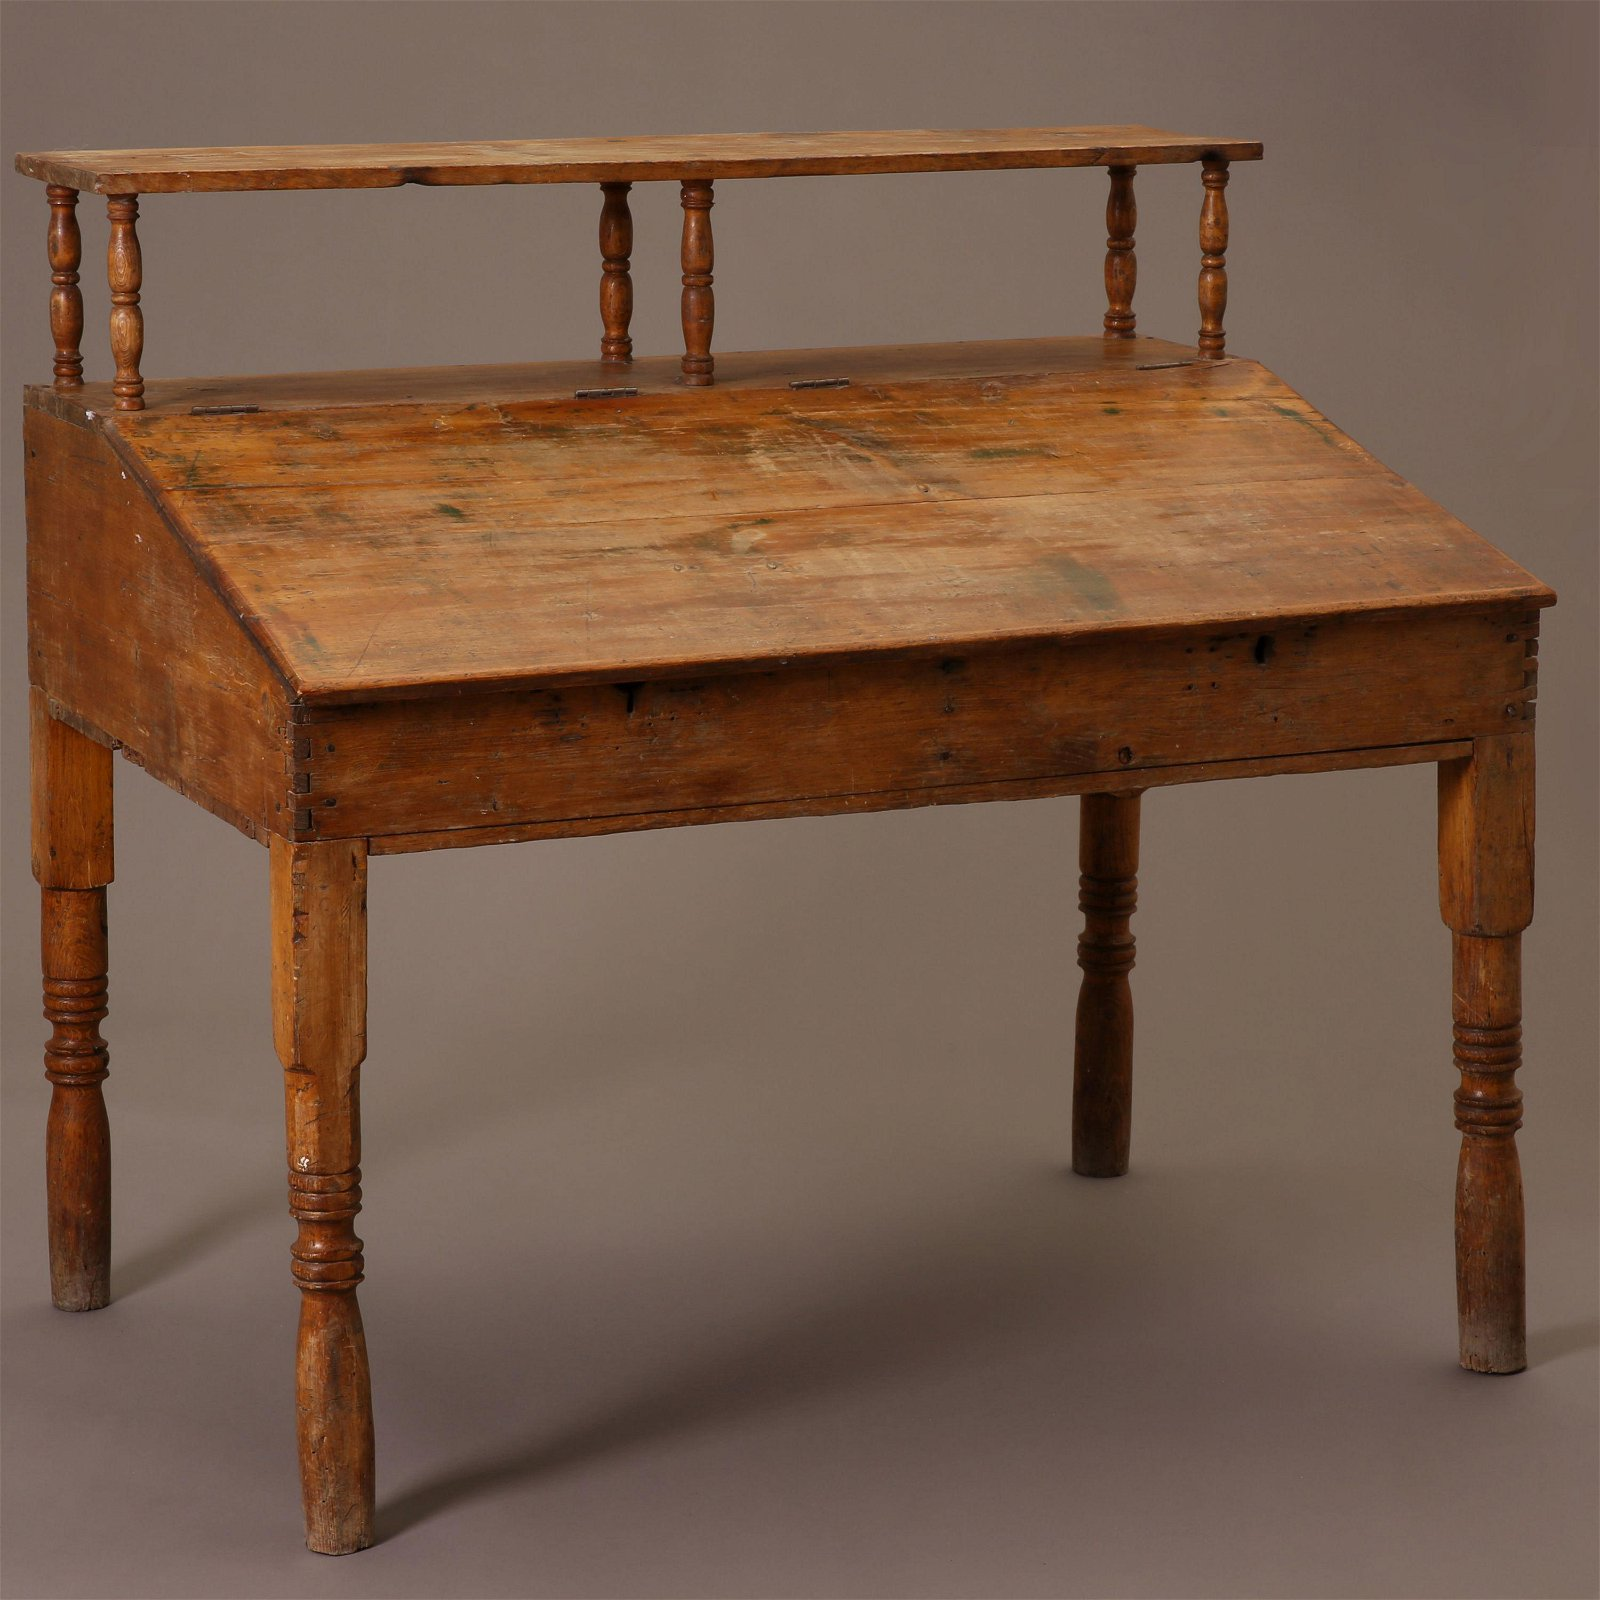 American, Printers Desk with Sloping Front